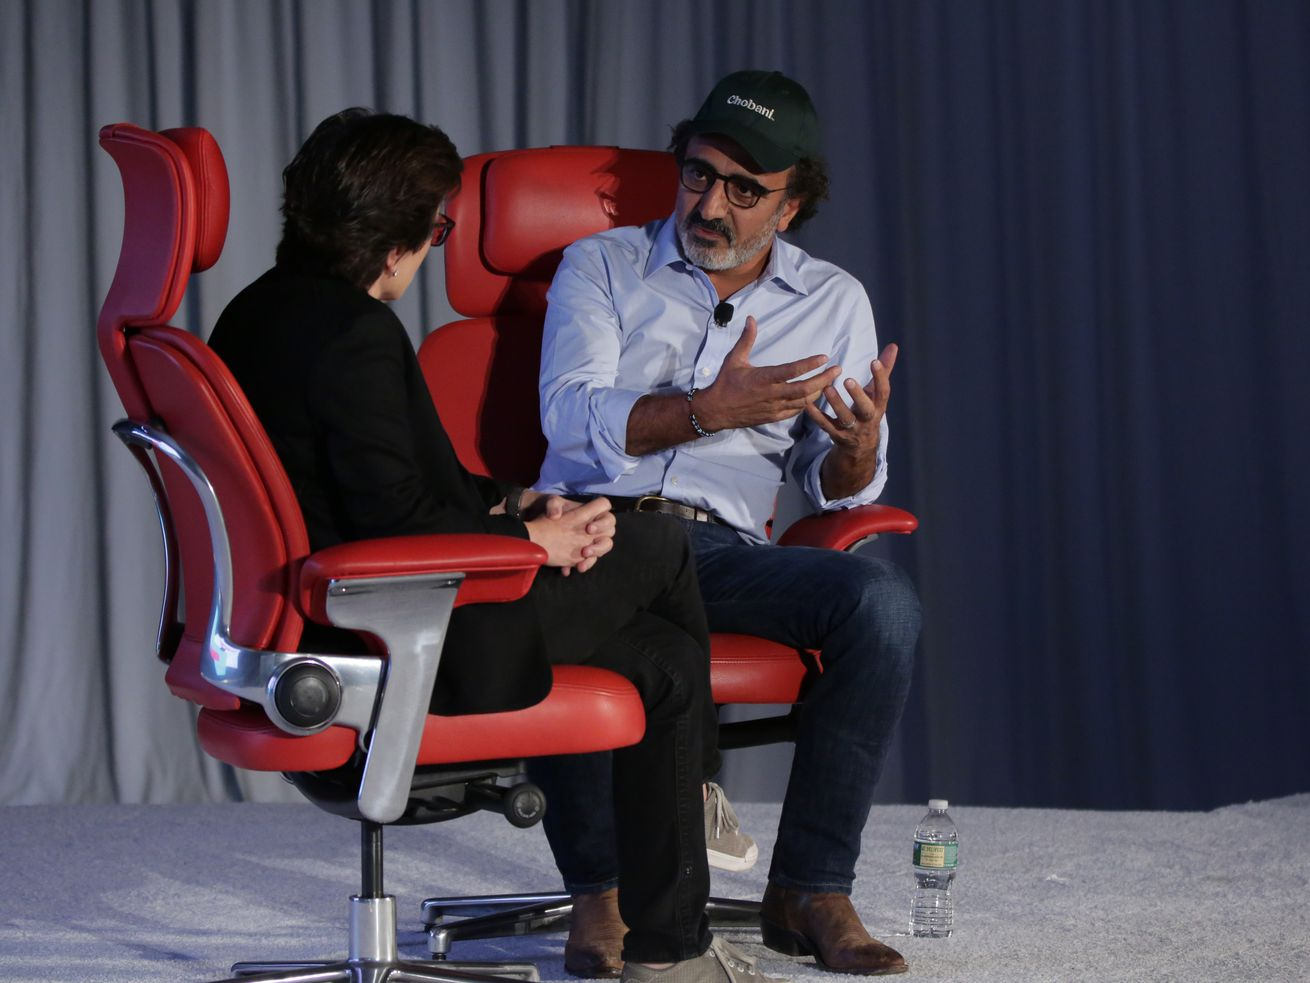 Chobani CEO Hamdi Ulukaya says he would consider going public — but won't sell to an industry giant